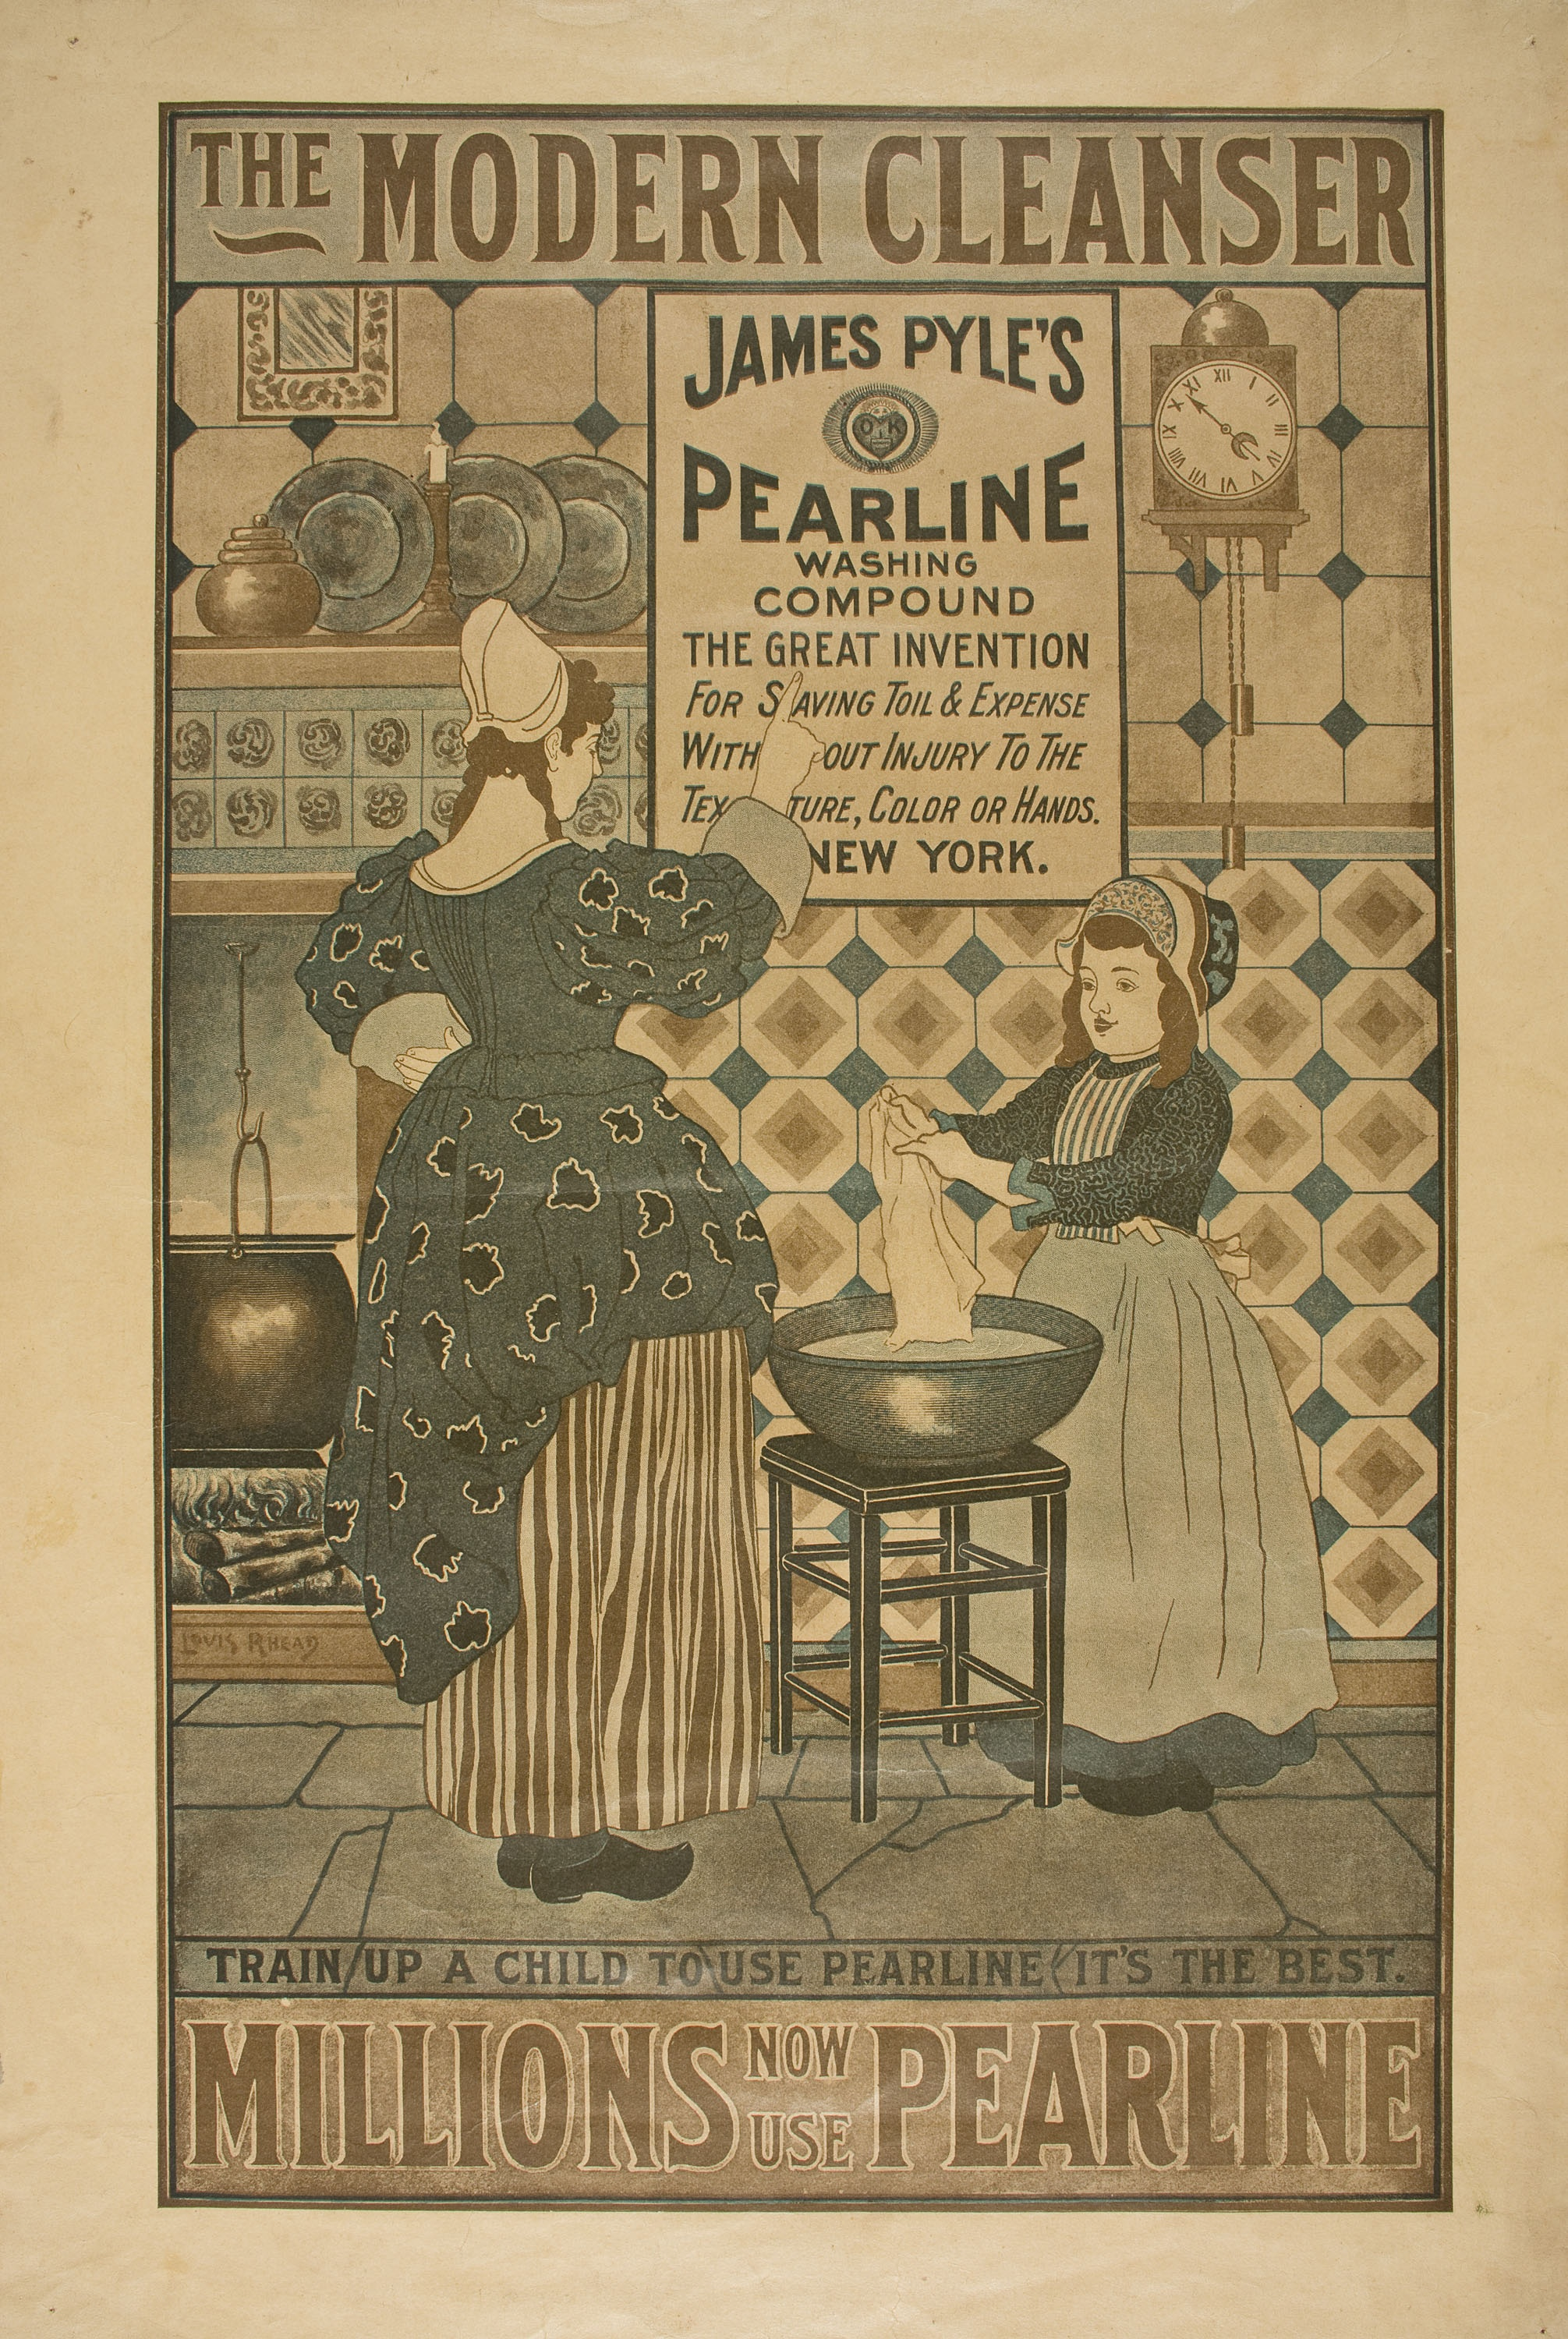 Louis John Rhead - The Modern Cleanser - 1896